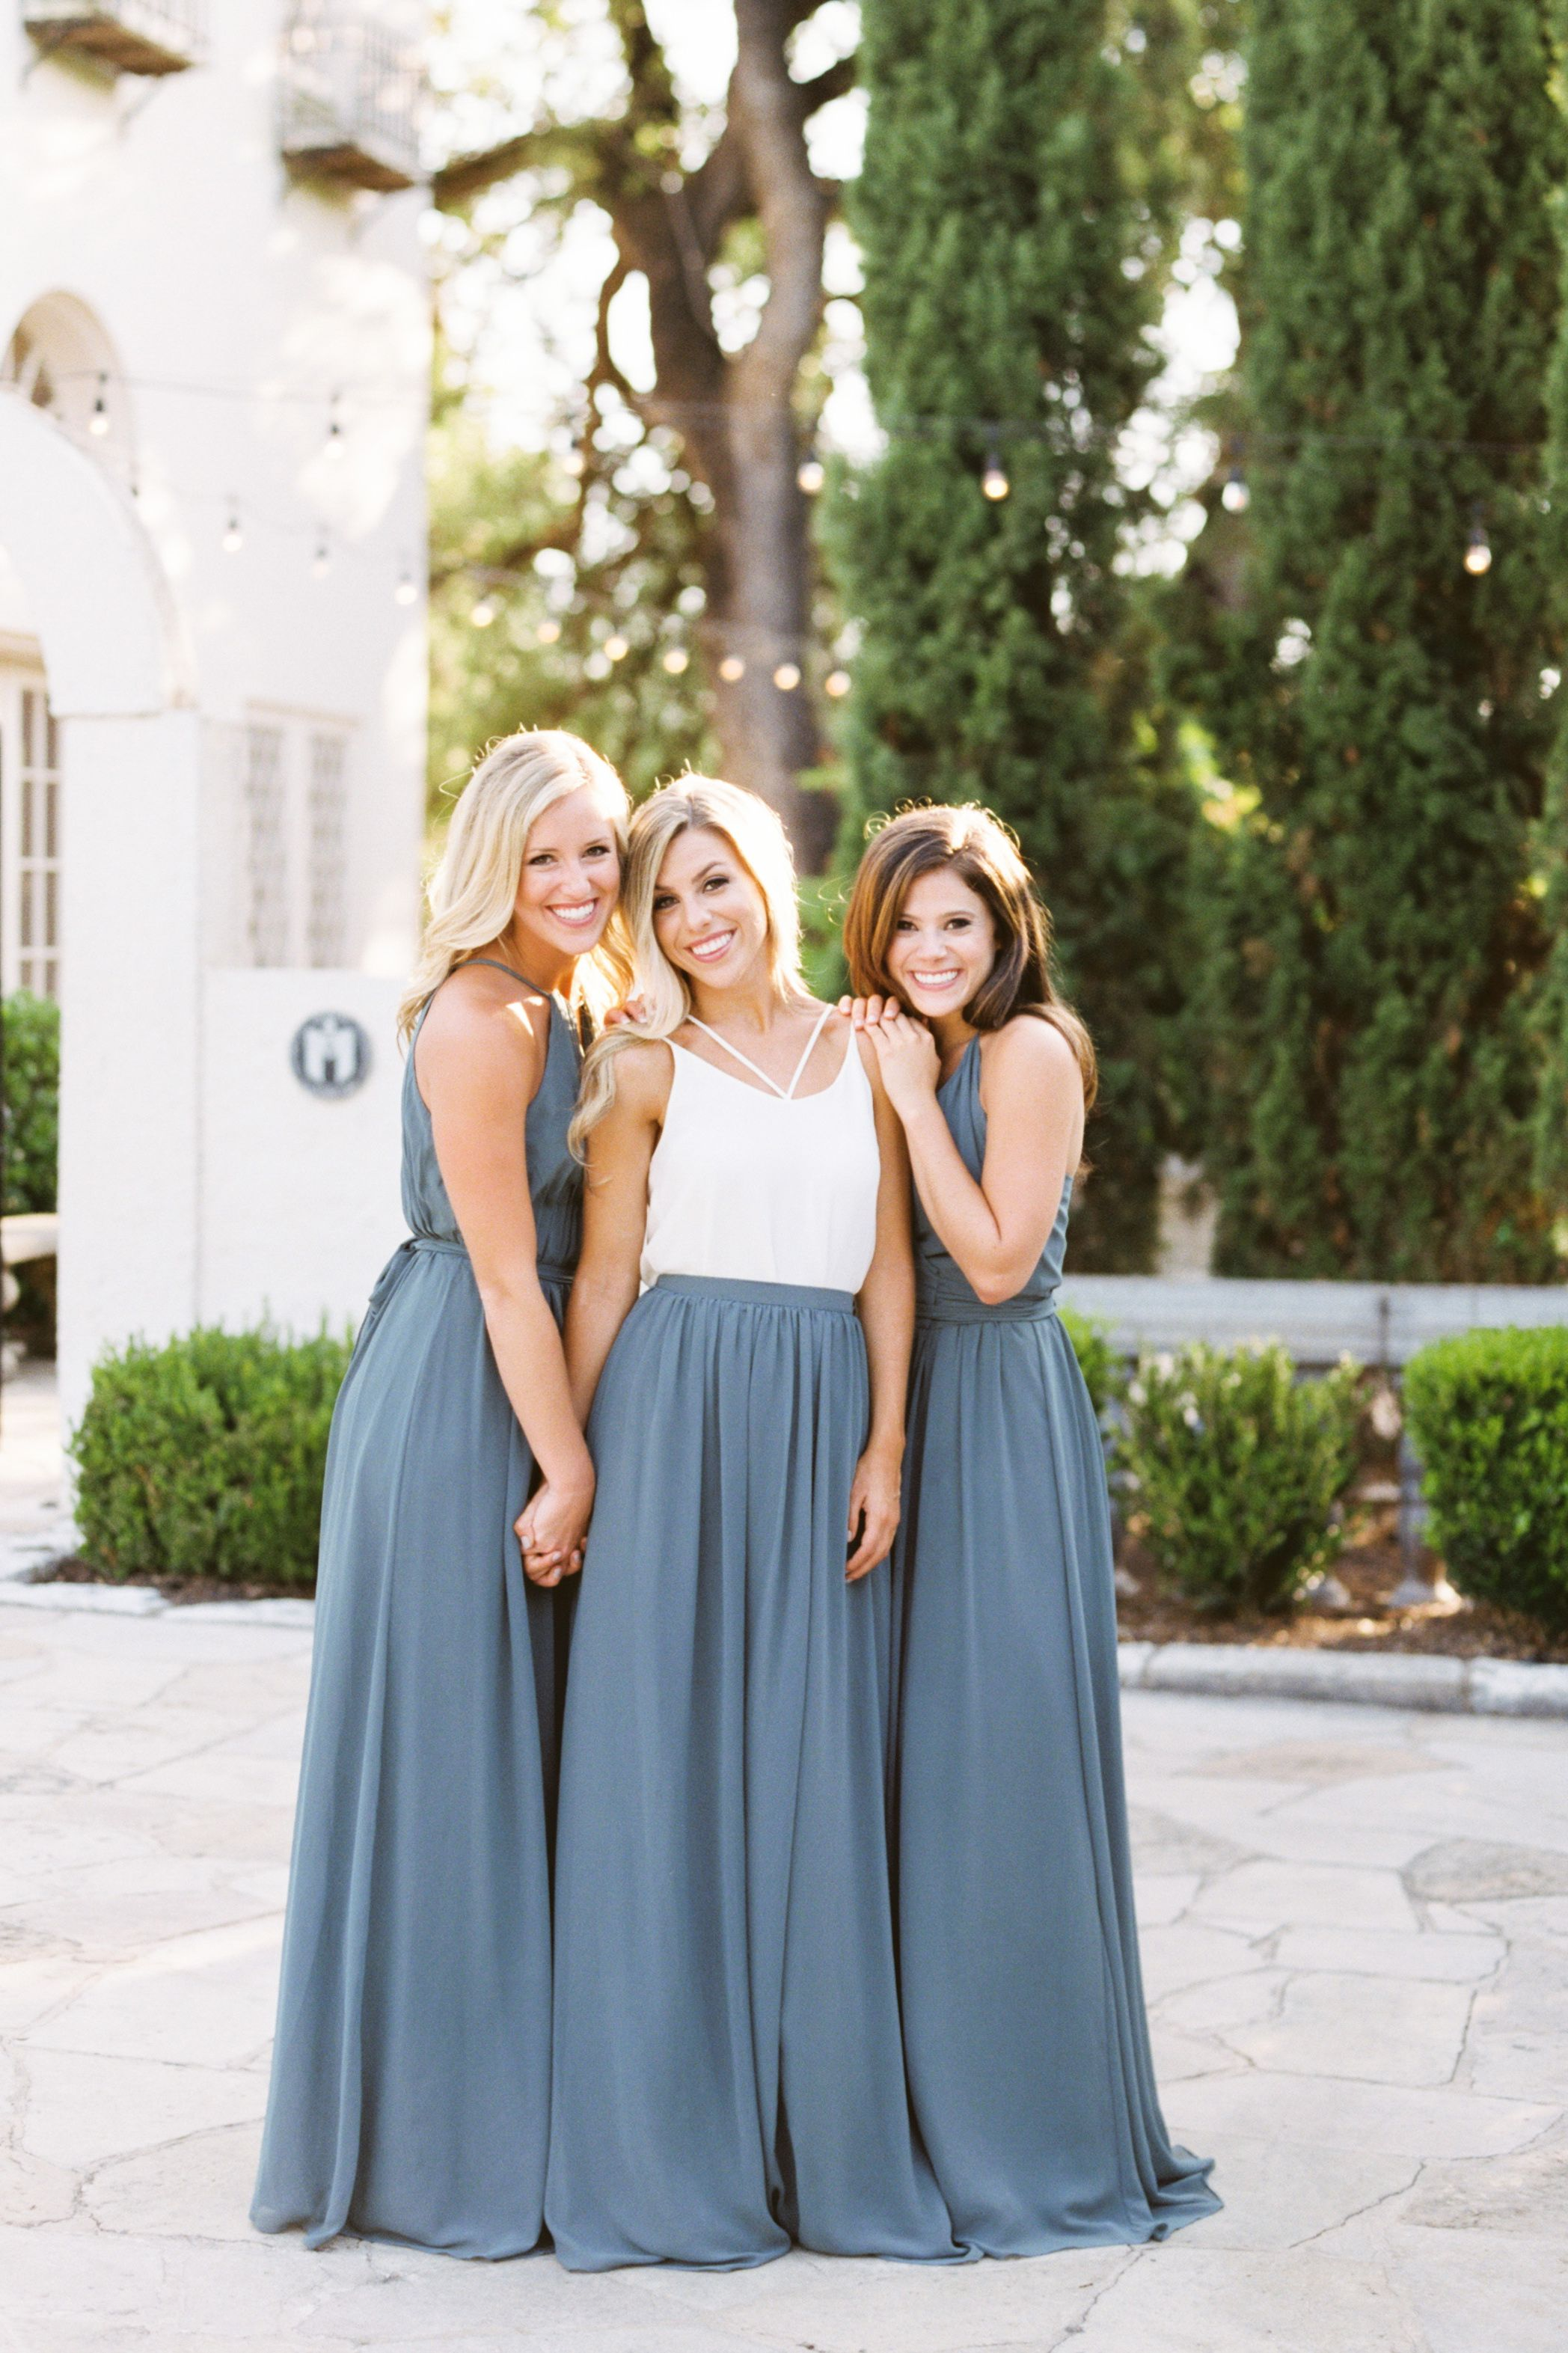 Bridesmaid Dresses And Separates From The Leading Ecommerce Bridesmaid Dress Company Try Any Style Before Y Bridesmaid Bridesmaid Separates Bridesmaid Dresses